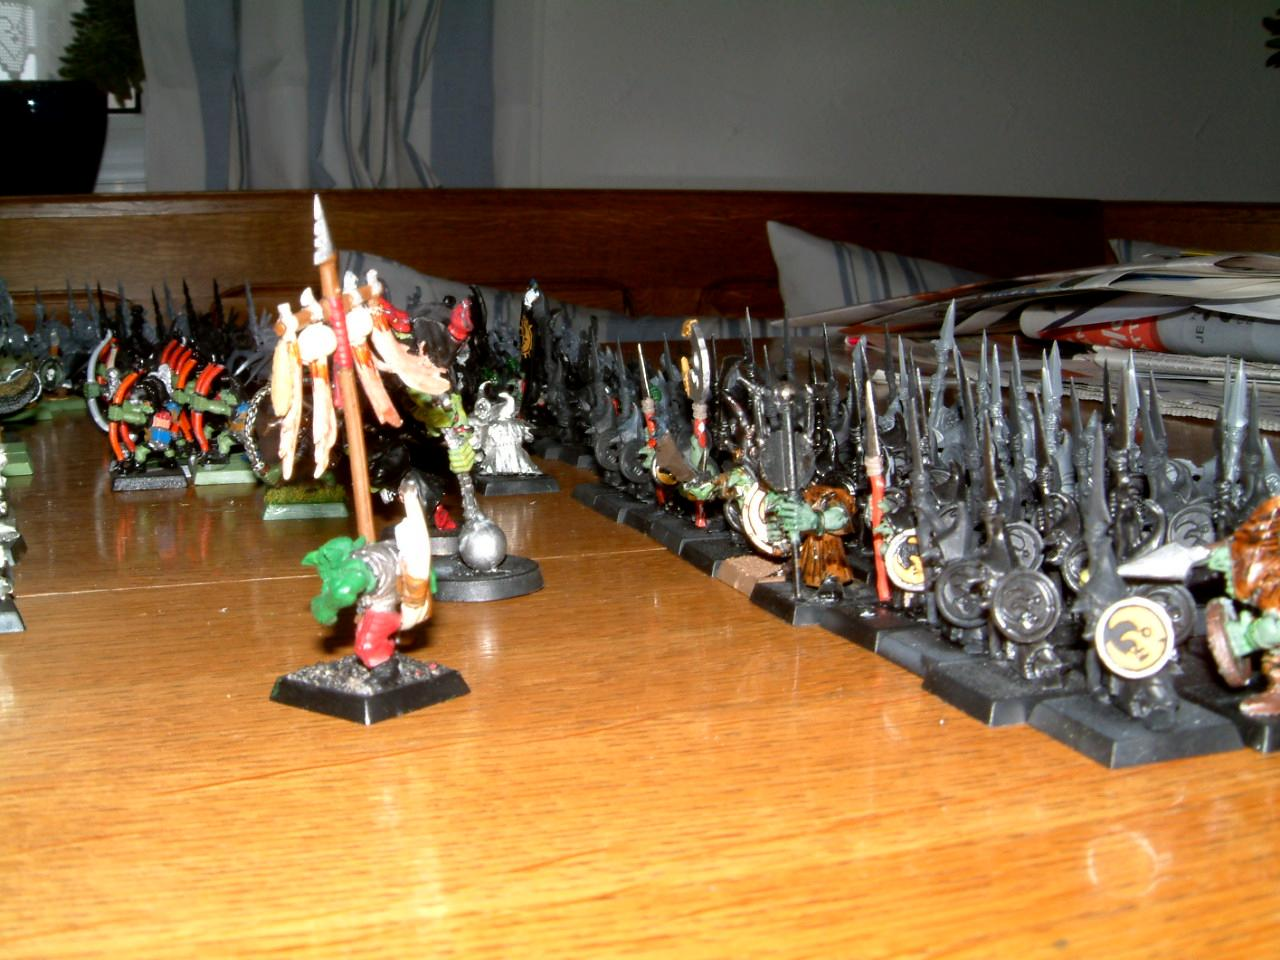 Army, Bearers, Black, Chaos, Command, Dreadnought, Goblins, Greenskins, Legion, Nurgle, Scratch Build, Soldier, Space, Space Marines, Word, Work In Progress